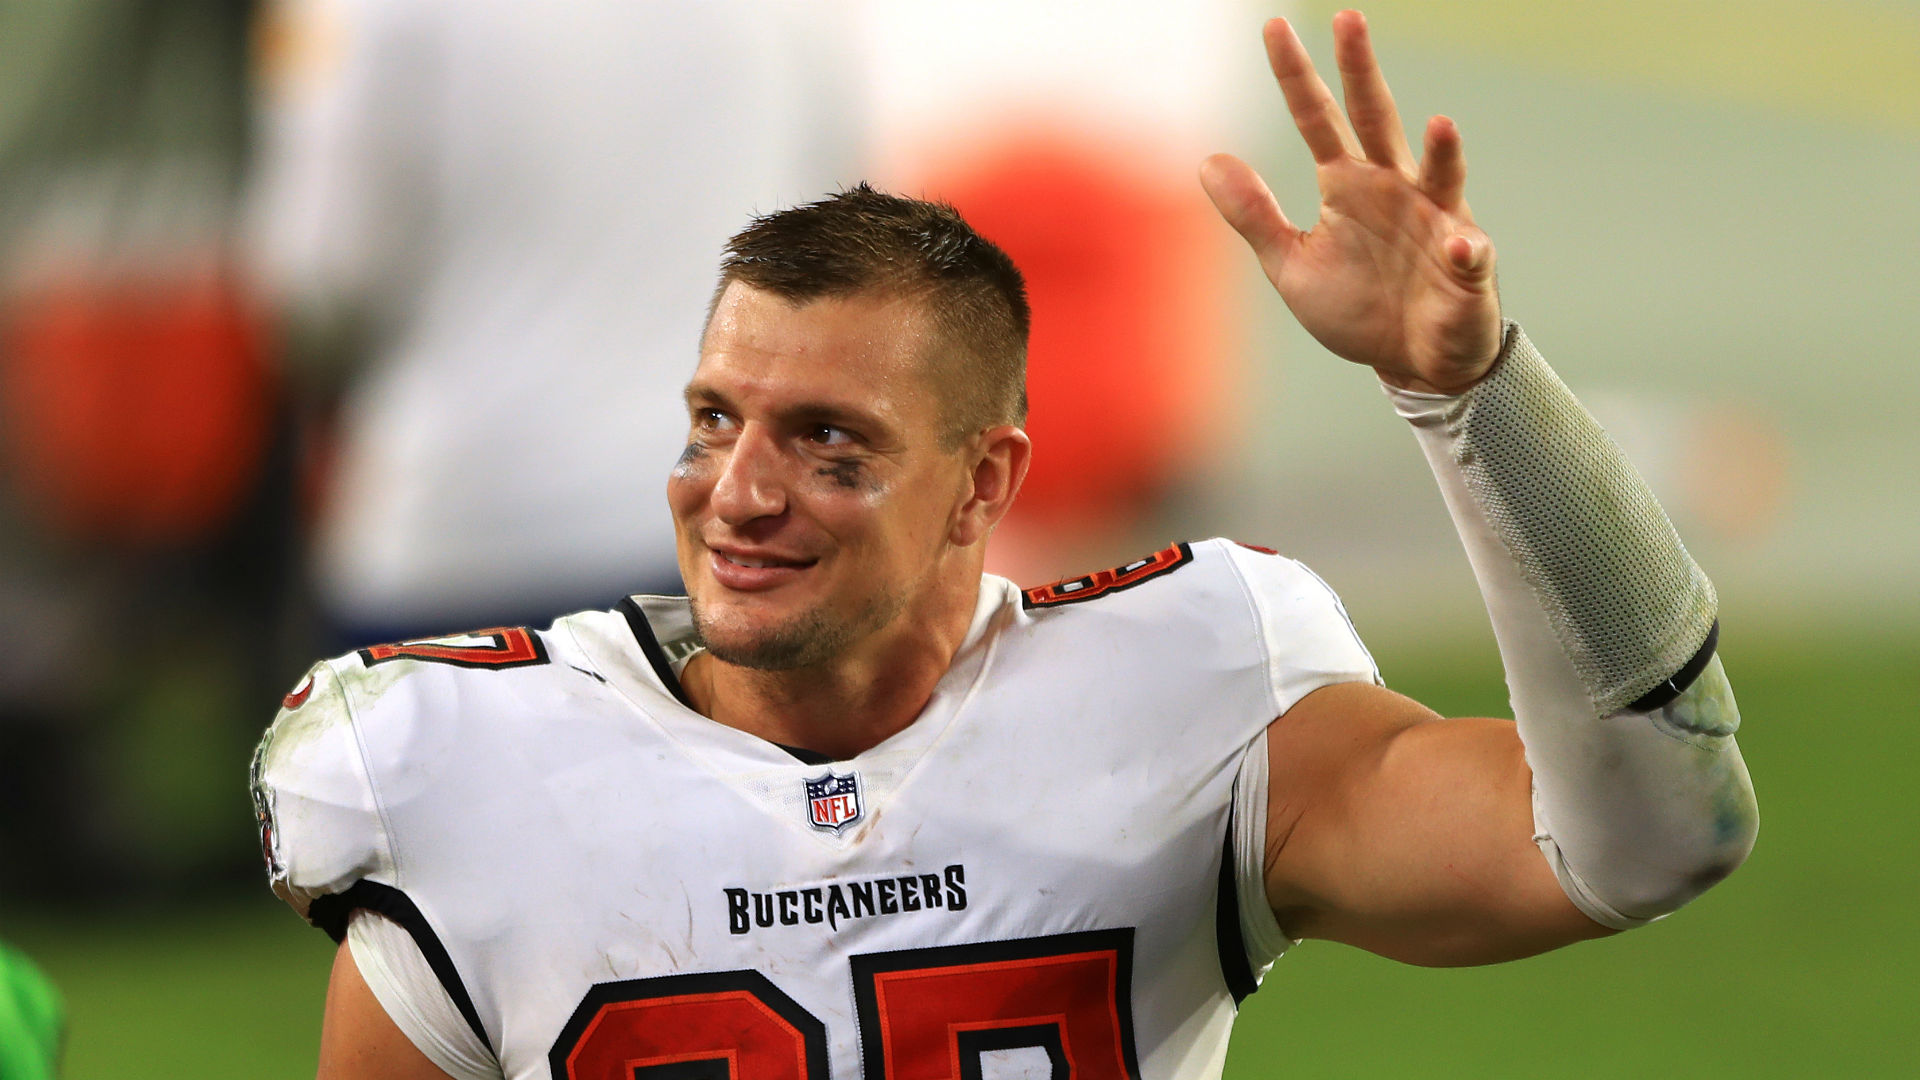 Rob Gronkowski Explains How He S Starting To Drizzle Like Maple Syrup With Buccaneers After Slow Debut Sporting News Rob gronkowski with marshmello, mojo rawley, and martin garrix at a party in miami rob gronkowski celebrates after scoring a touchdown against the cincinnati bengals all he needed to do was stop playing. rob gronkowski explains how he s